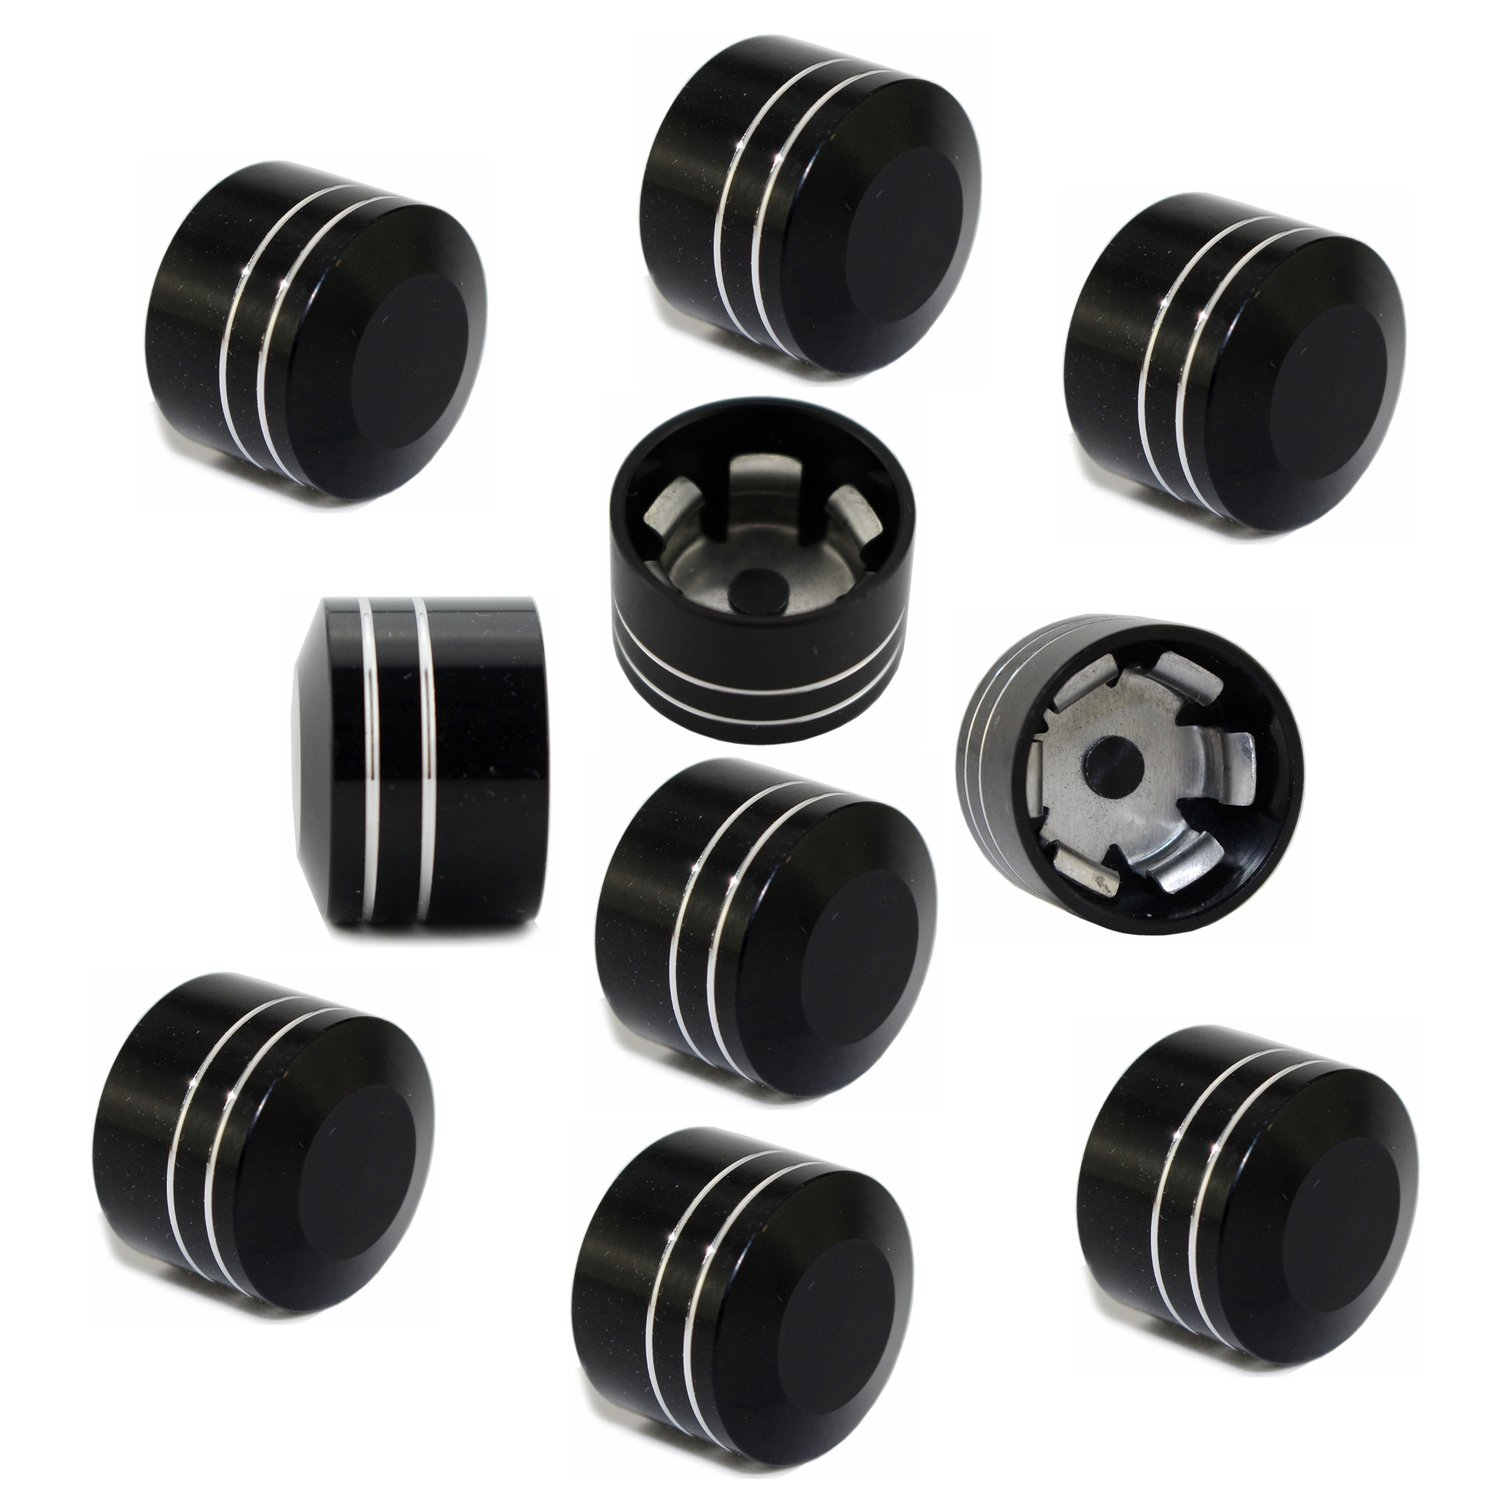 Pack of 10 Motorcycle Bolt Schrauben Topper Cover Caps CNC 11.5mm 7//16 For Twin Cam Dyna Softail Touring Road King Electra Glide XL